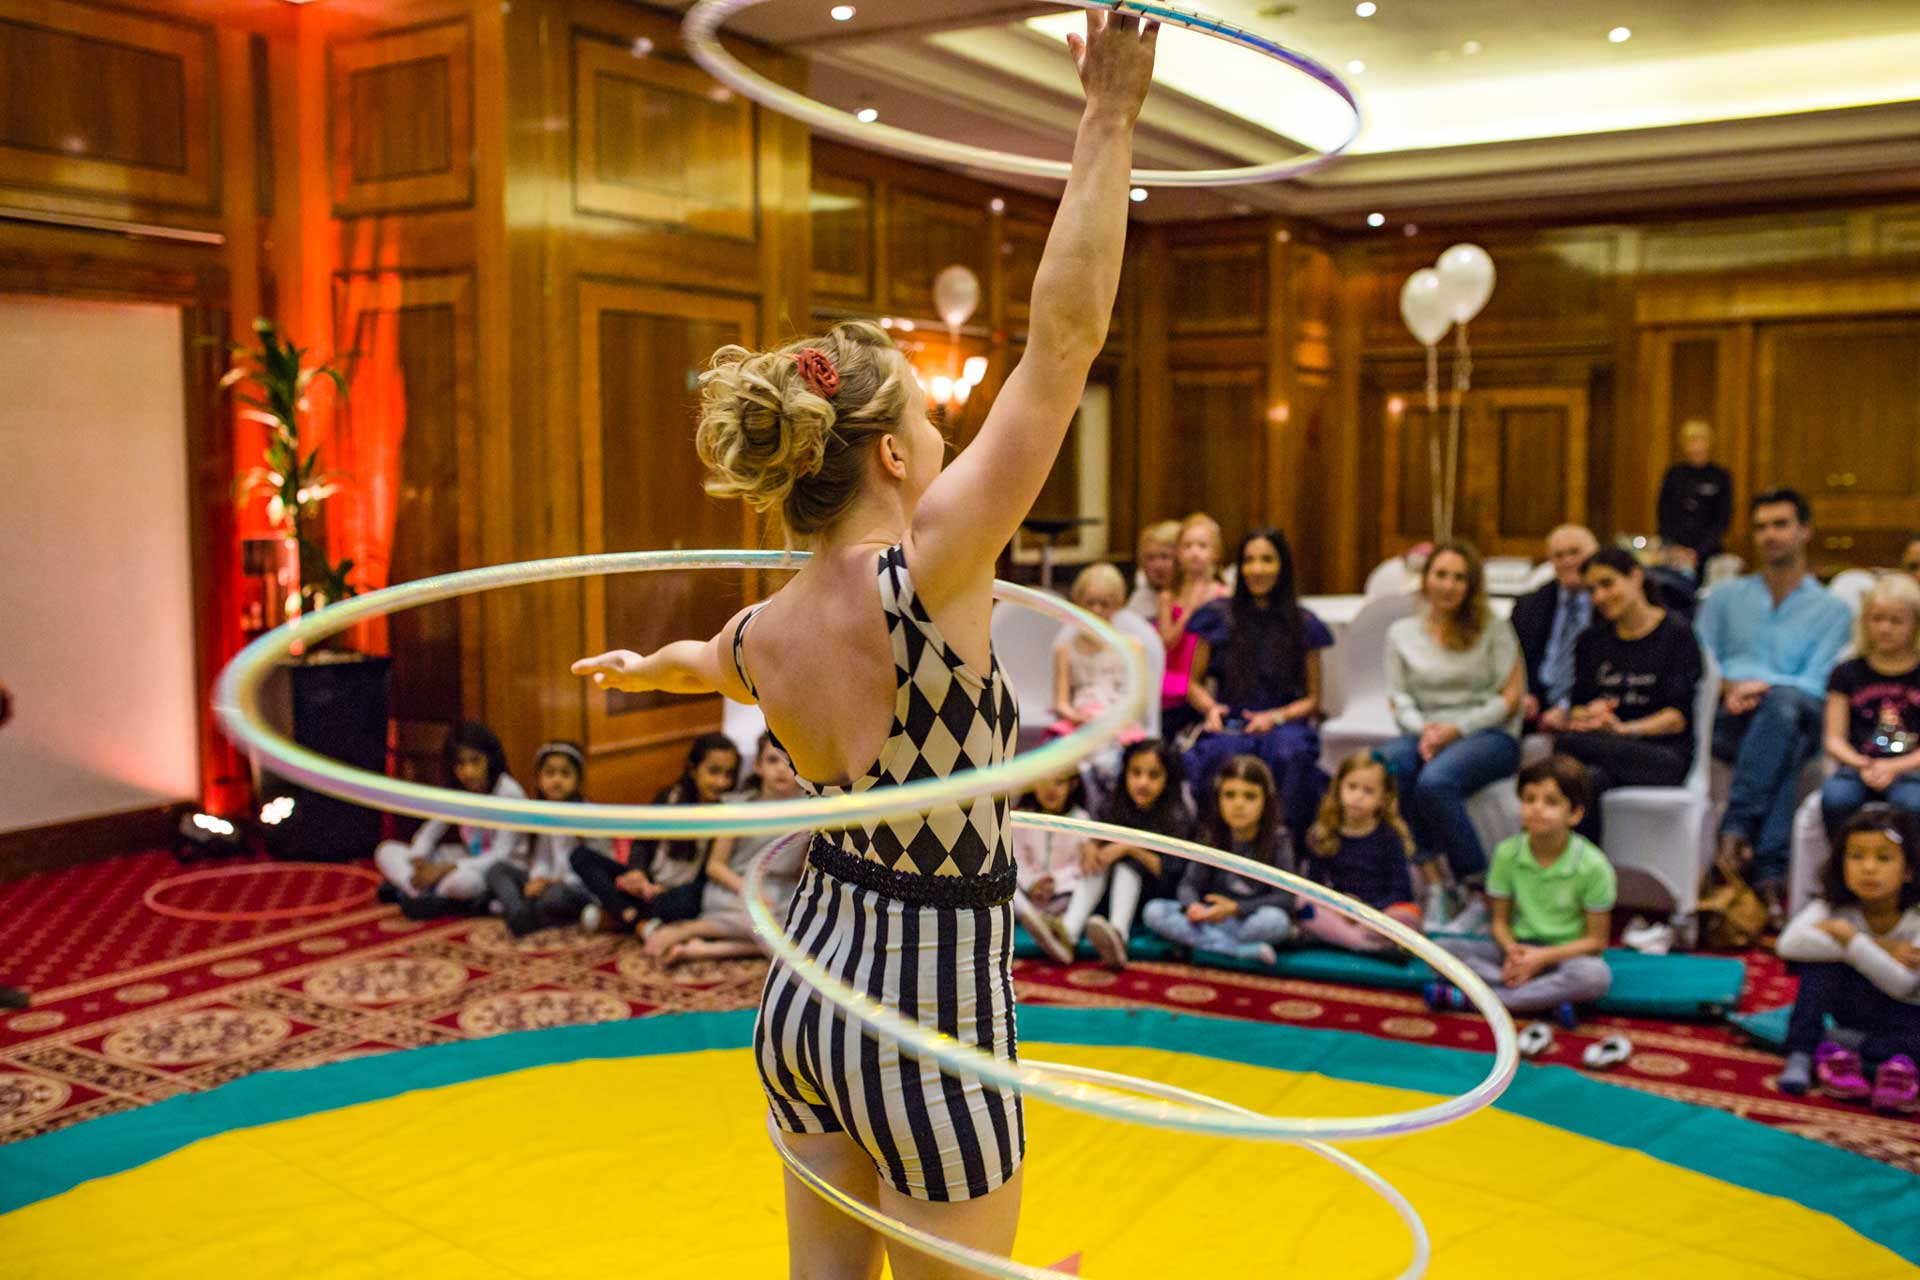 Hula hooper at a smart family circus party in london